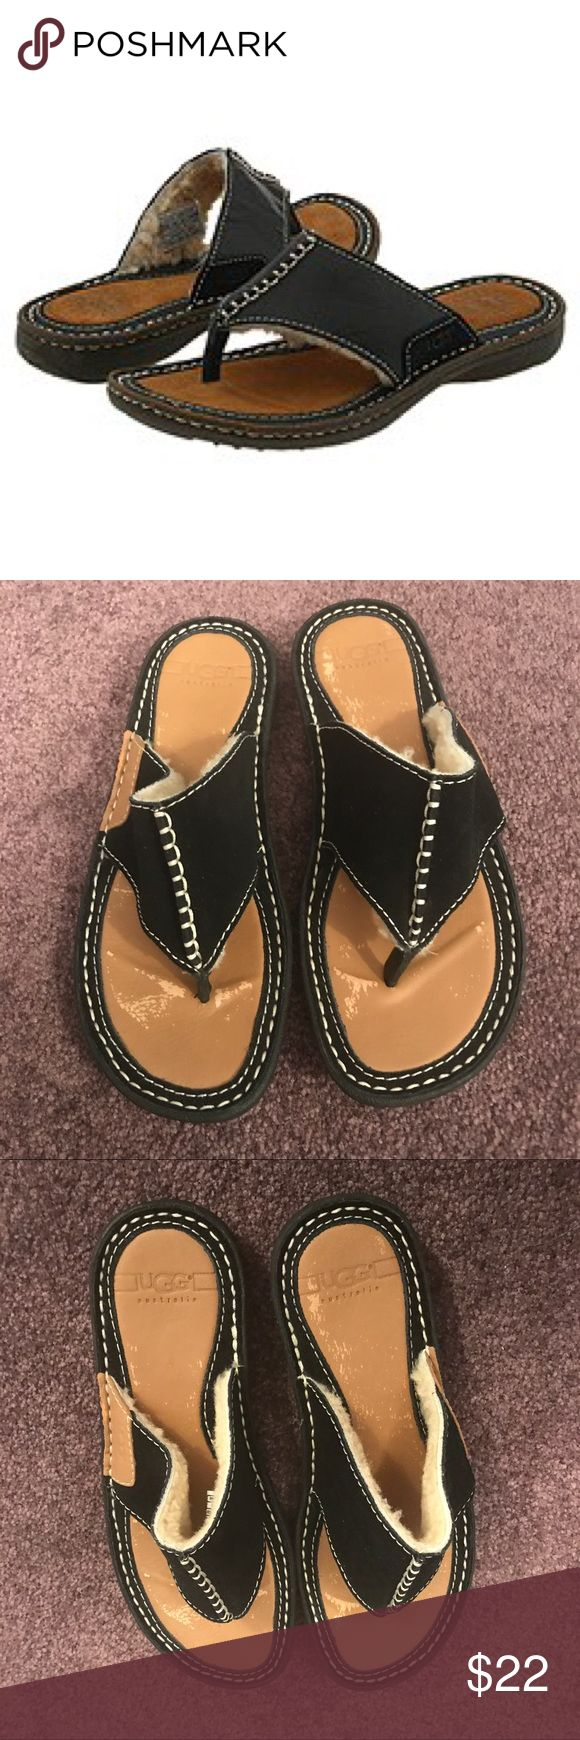 Ugg Australia Shearling Sandals Worn once. In great condition. Slight rubbing as shown ! UGG Shoes Sandals